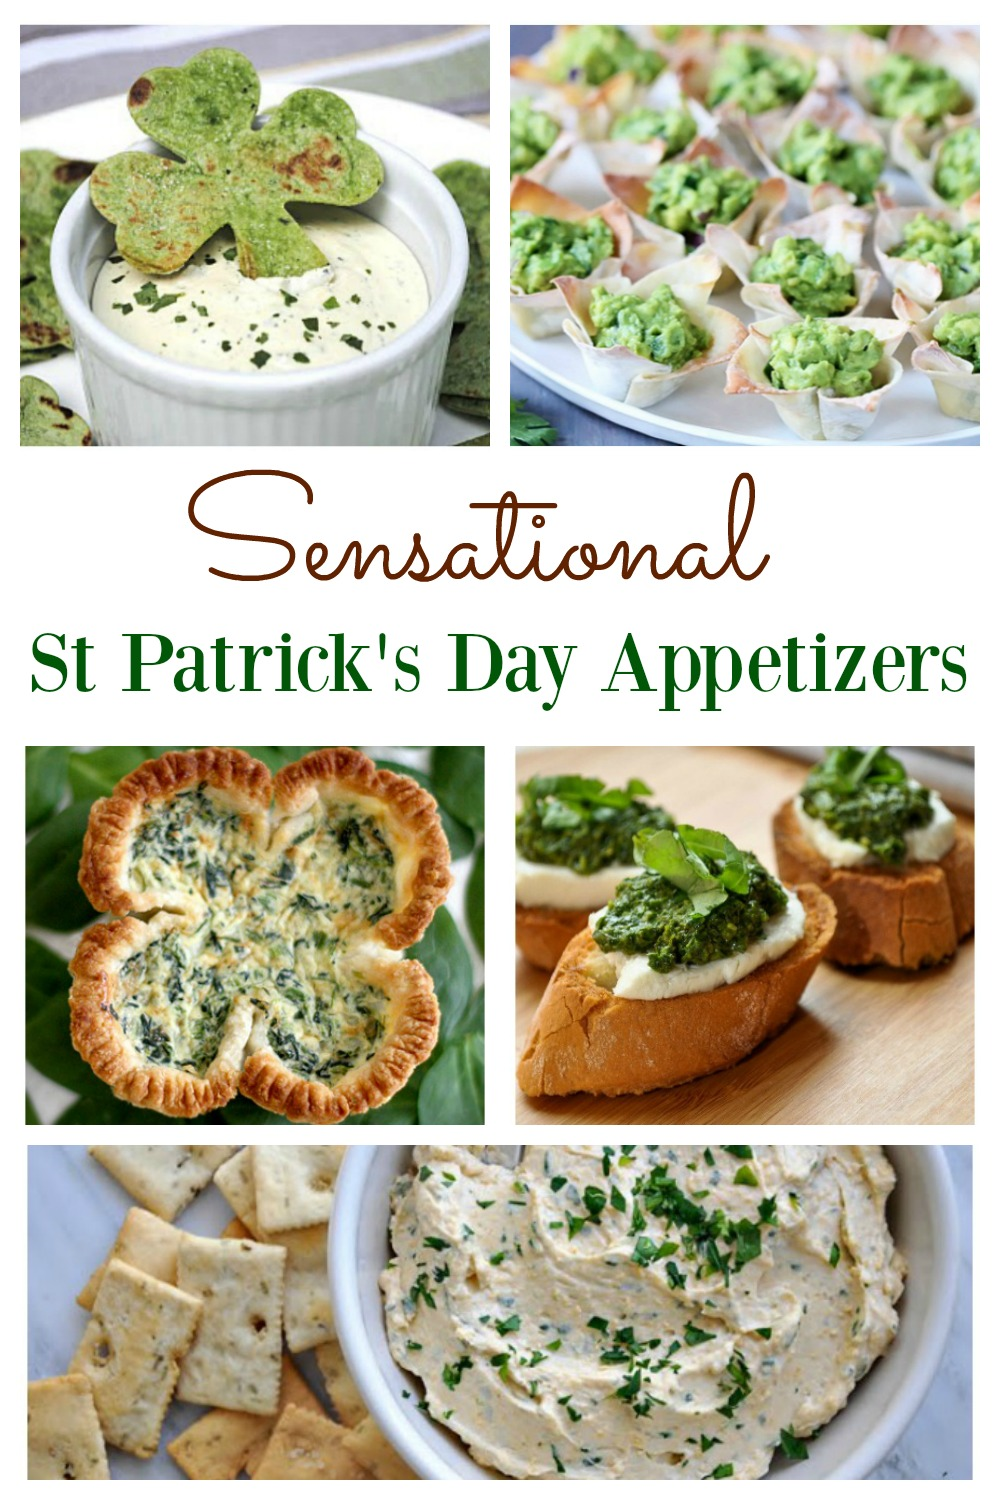 If you are planning a St Patrick's day celebration, the chances are you are looking for some amazing food to serve. It will be easy to organize that special event using this selection of St Patrick's day appetizers. Each morsel will satisfy the tastebuds, look amazing and have your guests begging for more. They are the prefect party food. So what are you waiting for? Check out these recipes and decide whether you are going to make one or all of them!